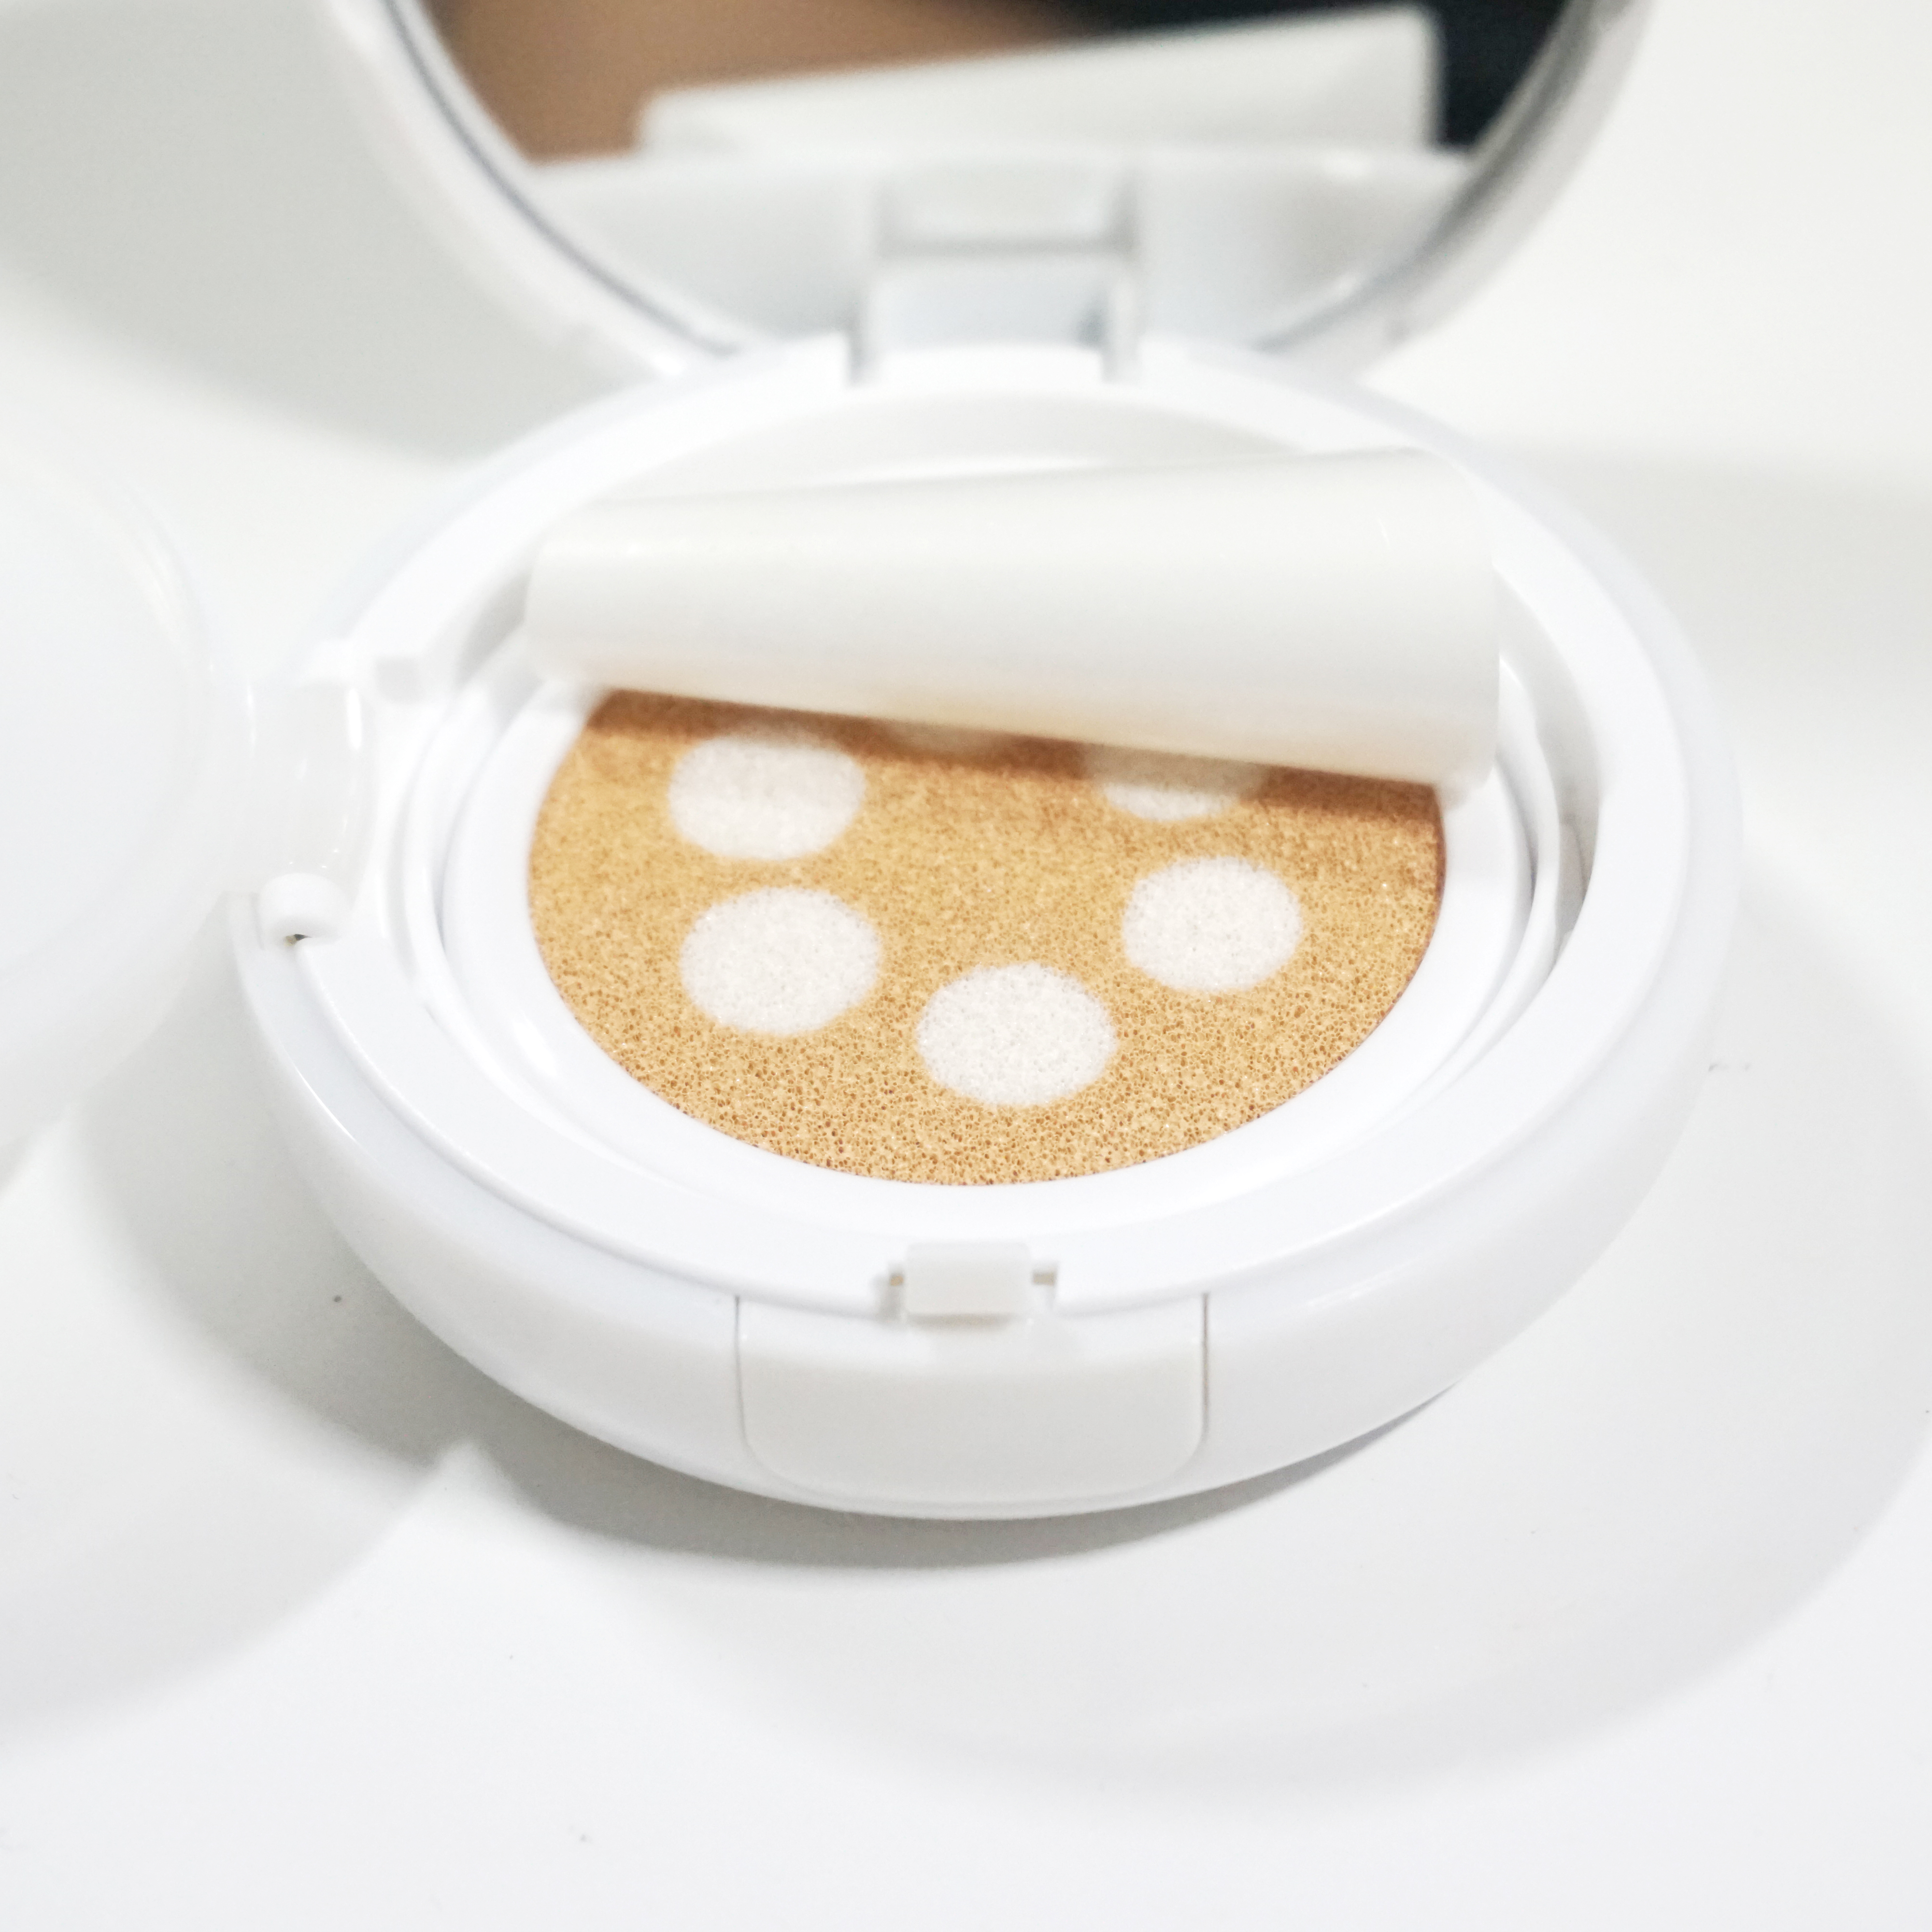 ETUDE HOUSE Precious Mineral Any Cushion SPF50+ PA+++ Light Pearl Aura REVIEW